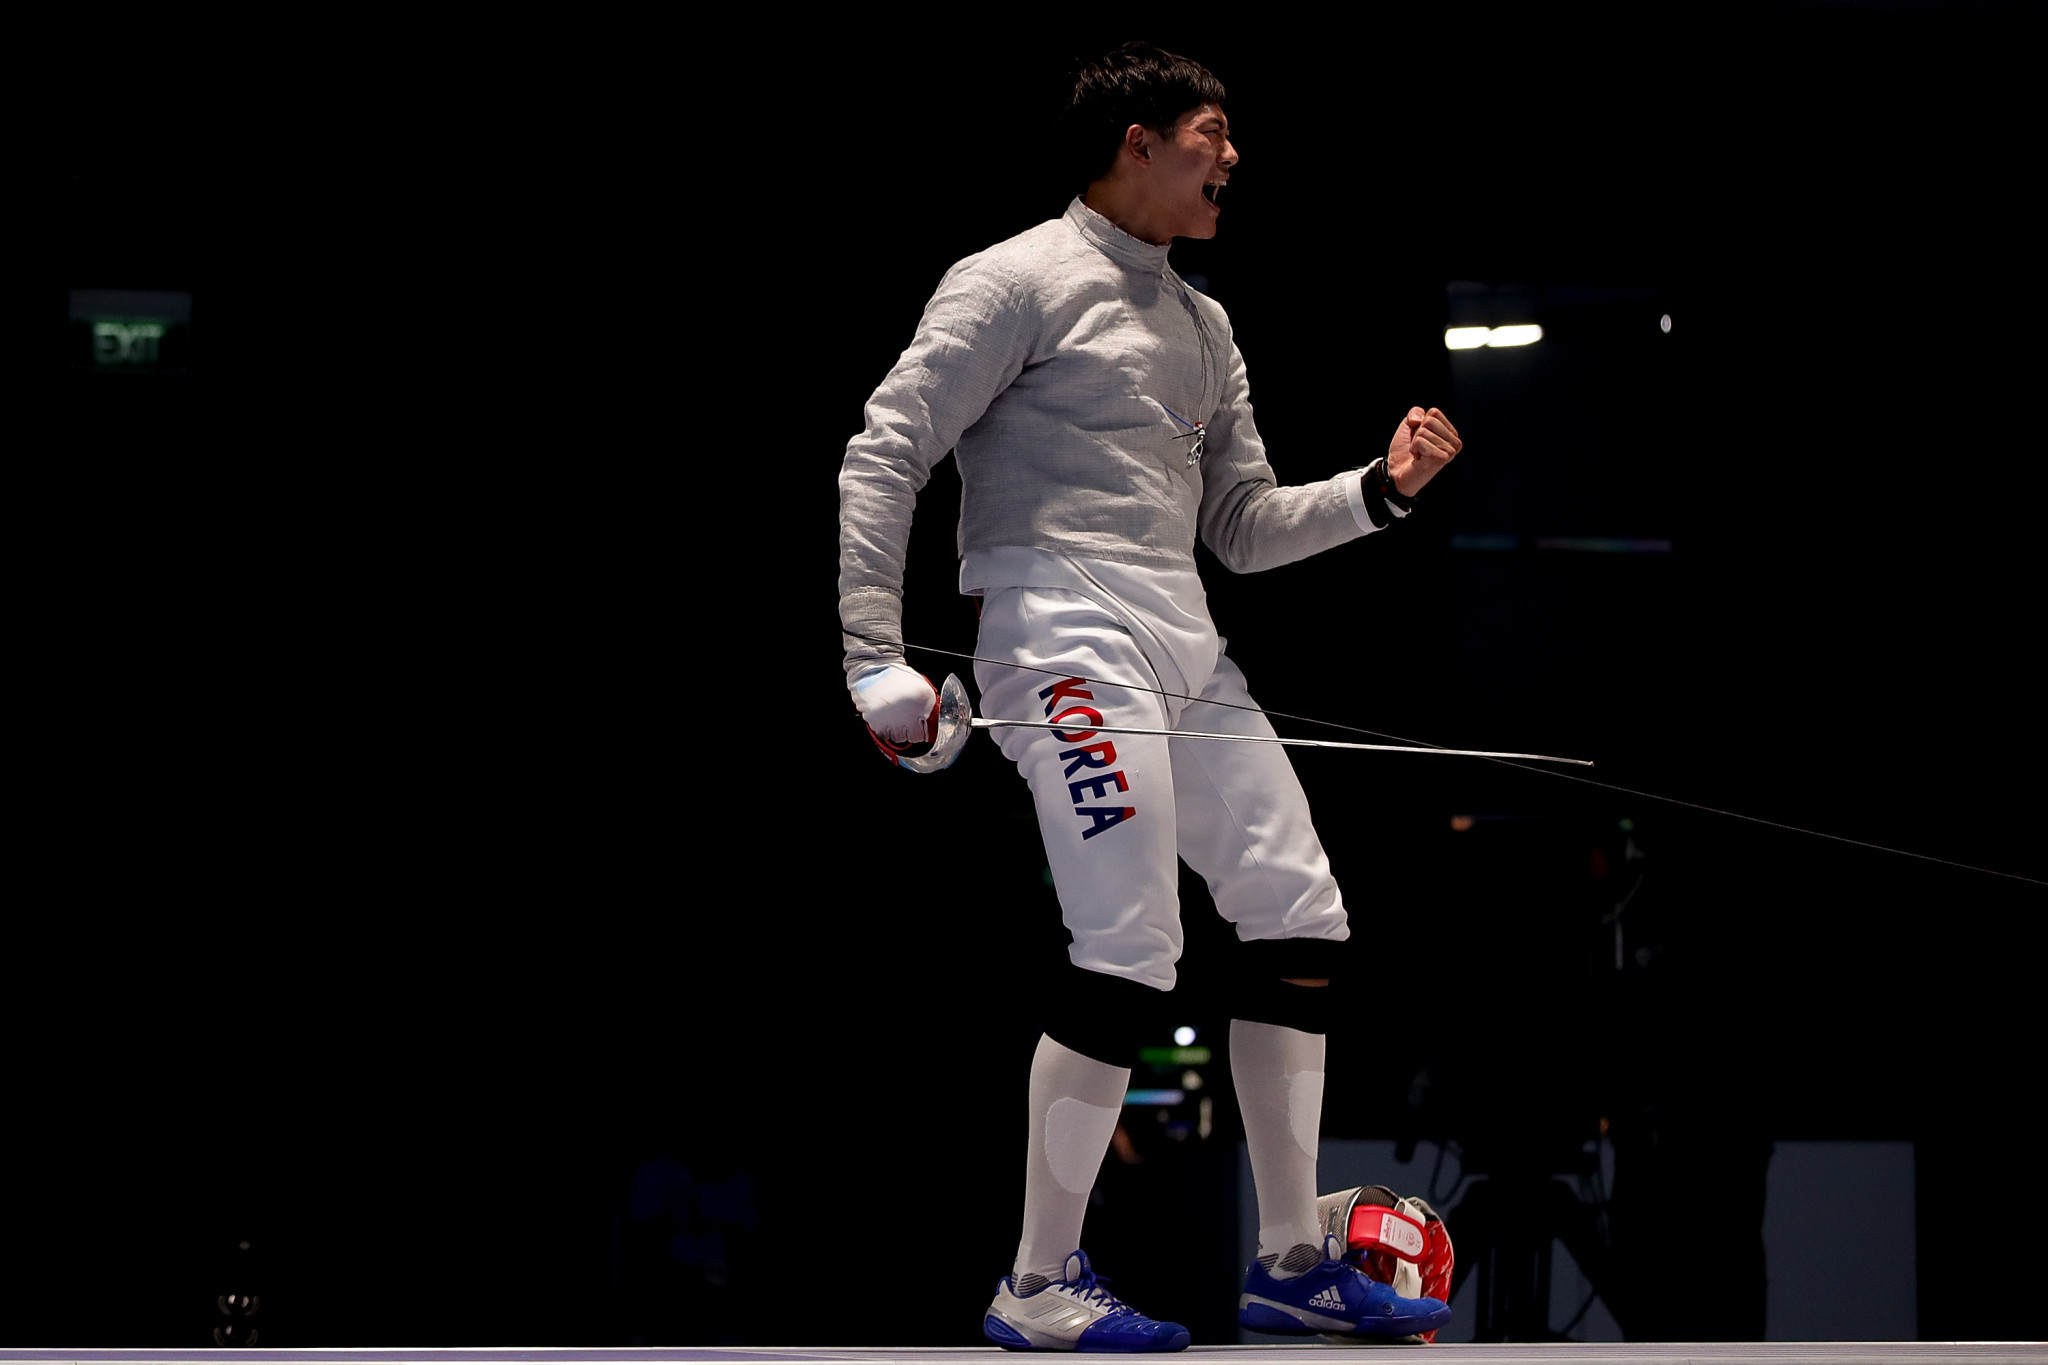 South Korea strike double gold at Asian Fencing Championships in Chiba